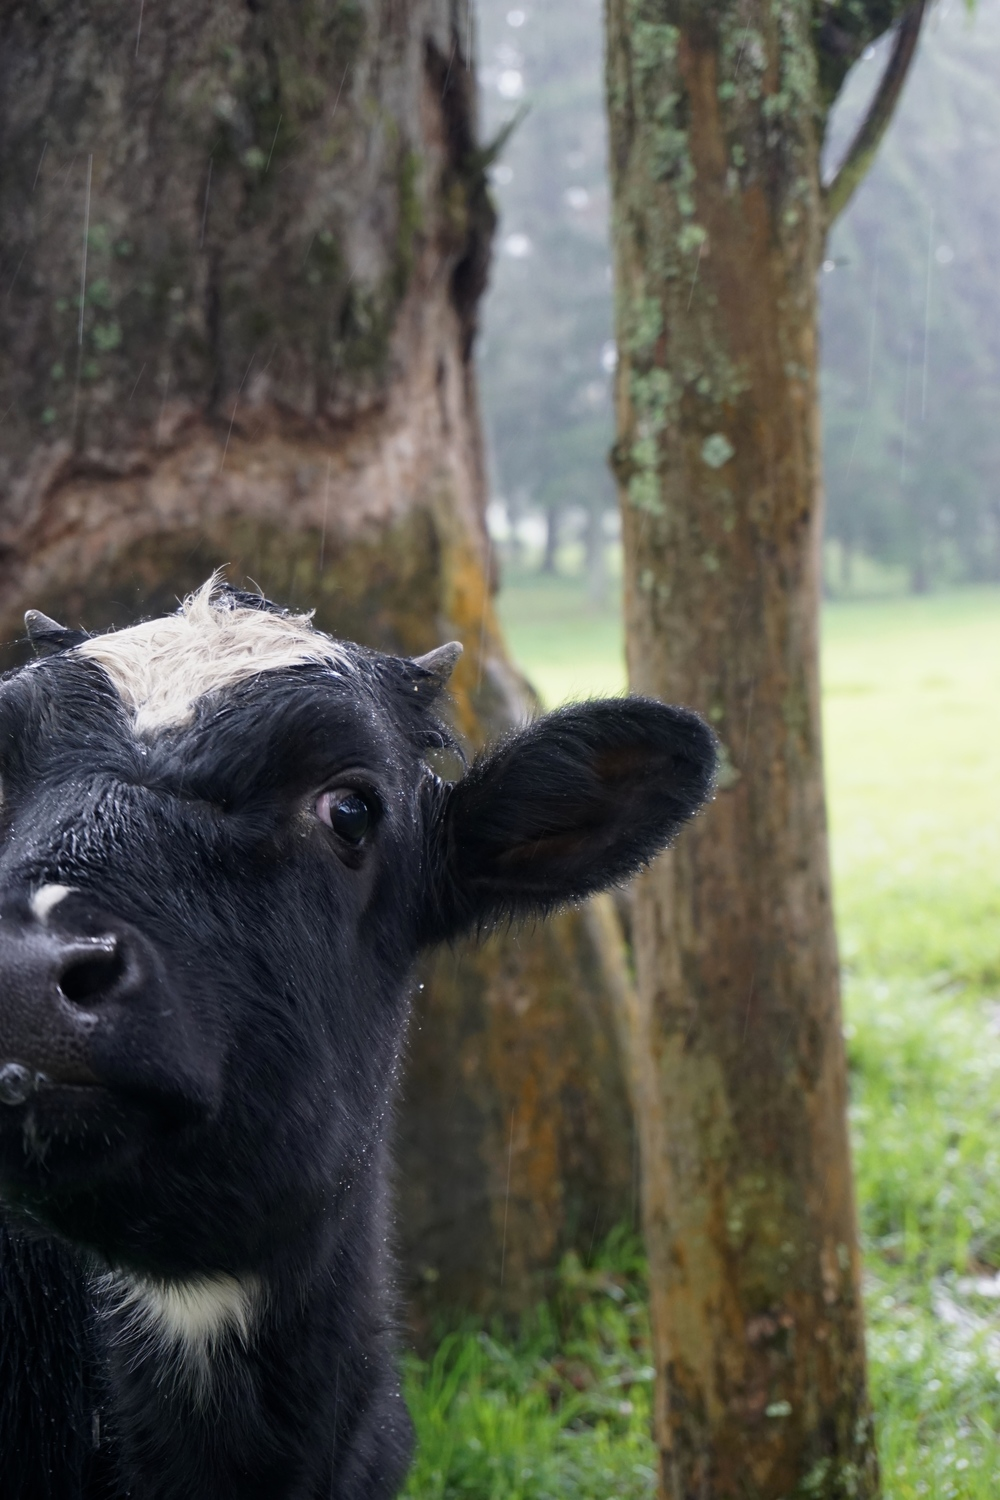 This cow has the BEST cow lick